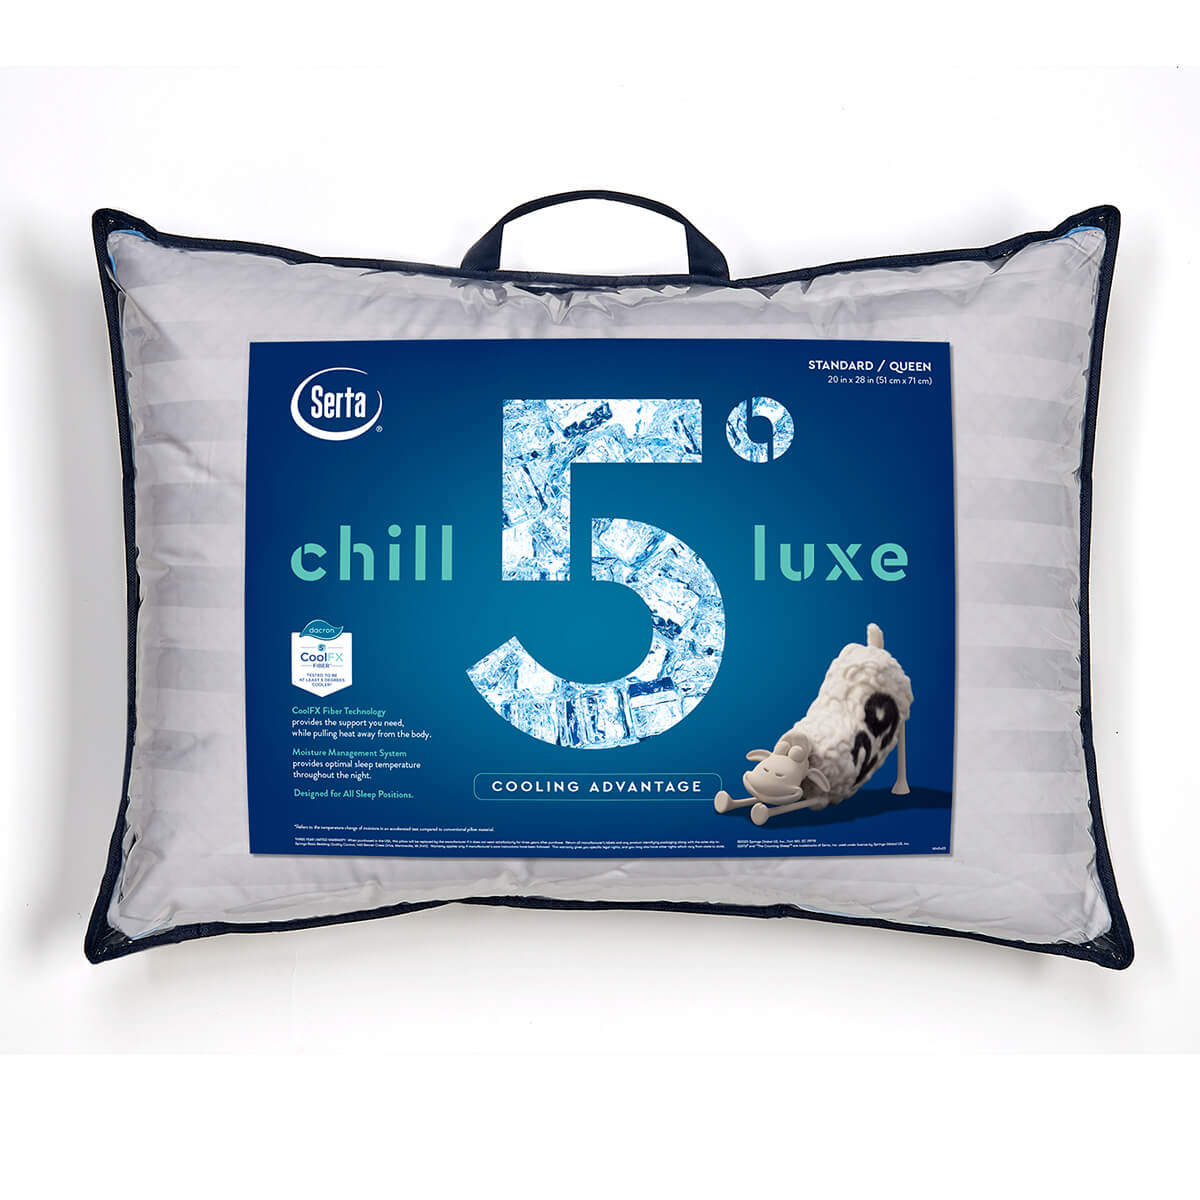 Serta 5 Degree Chill Luxe Cooling Pillow - front of pillow with packaging